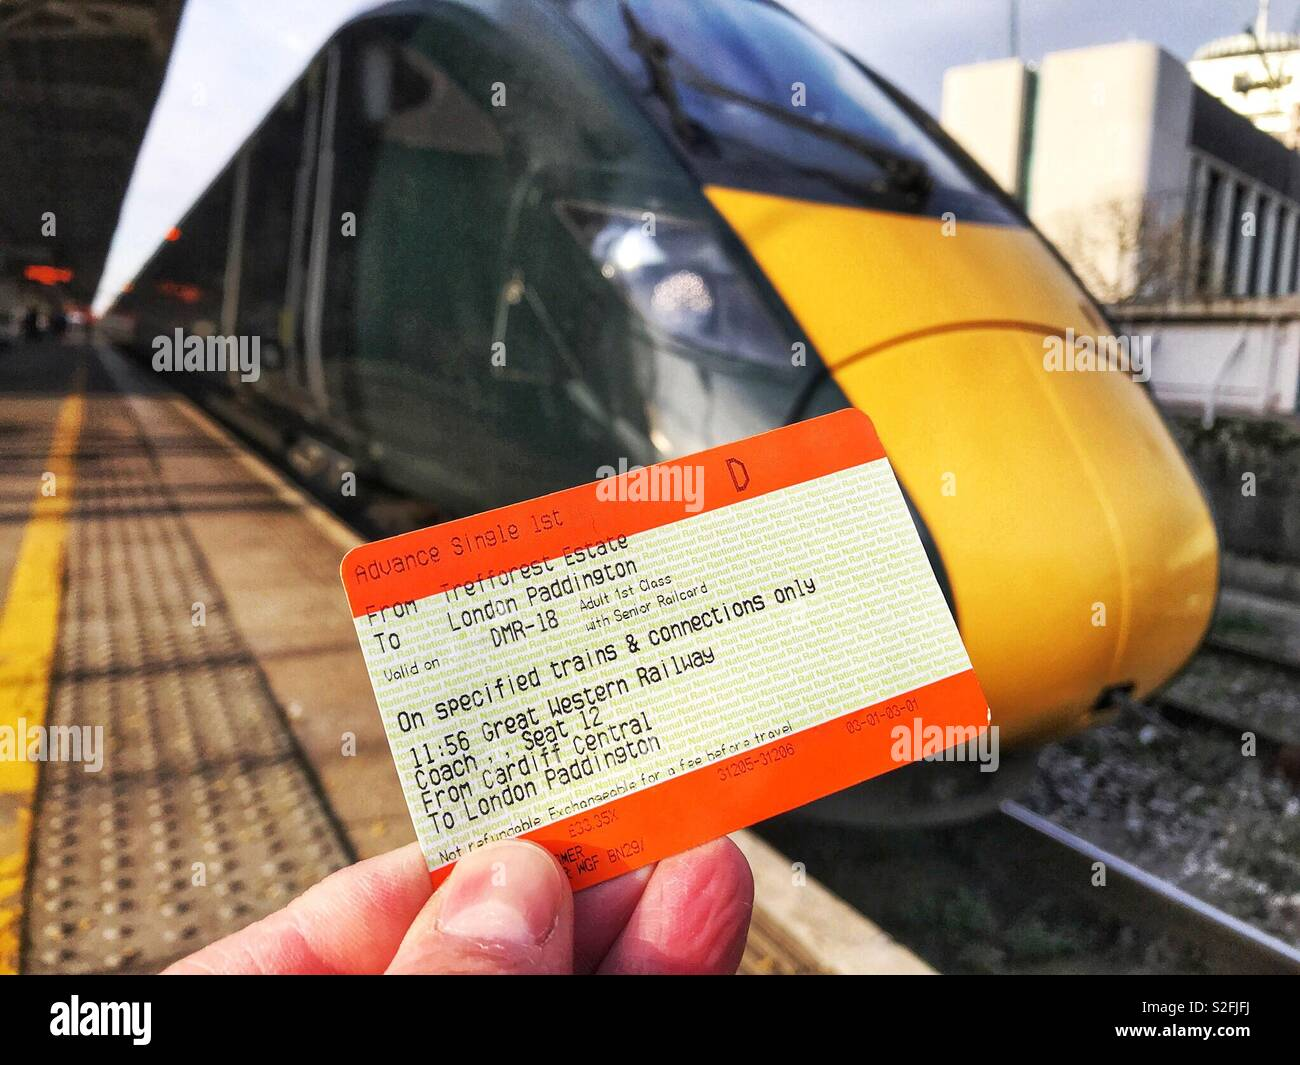 Close up of rail ticket in front of an inter city express train in a station - Stock Image